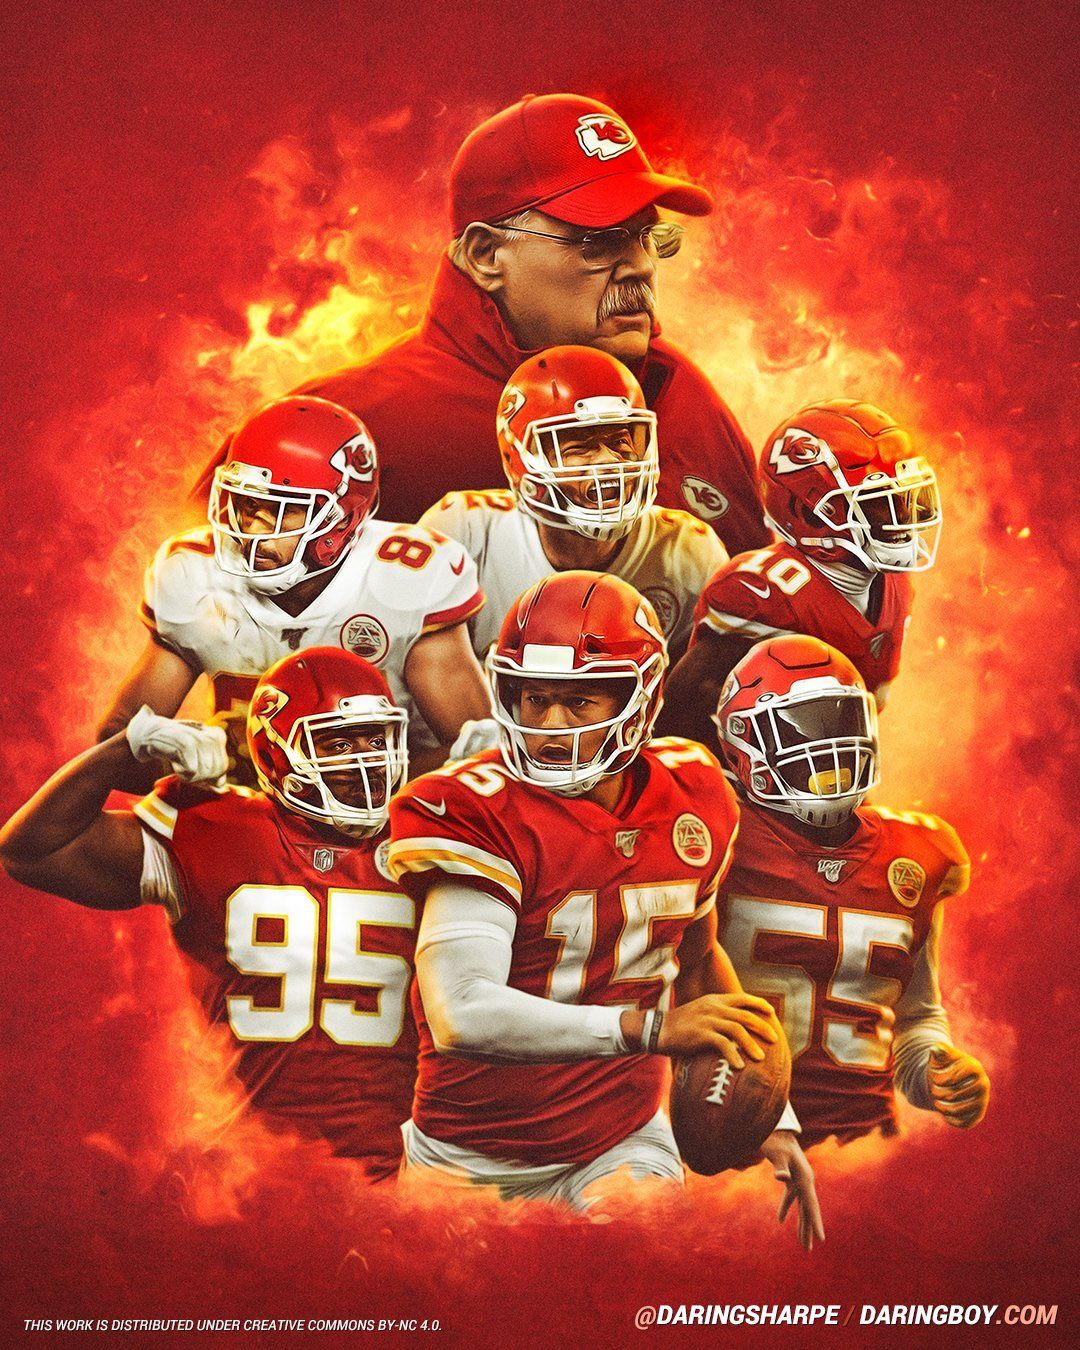 Trenches On Twitter In 2020 Kansas City Chiefs Funny Kansas City Chiefs Logo Kansas City Chiefs Football